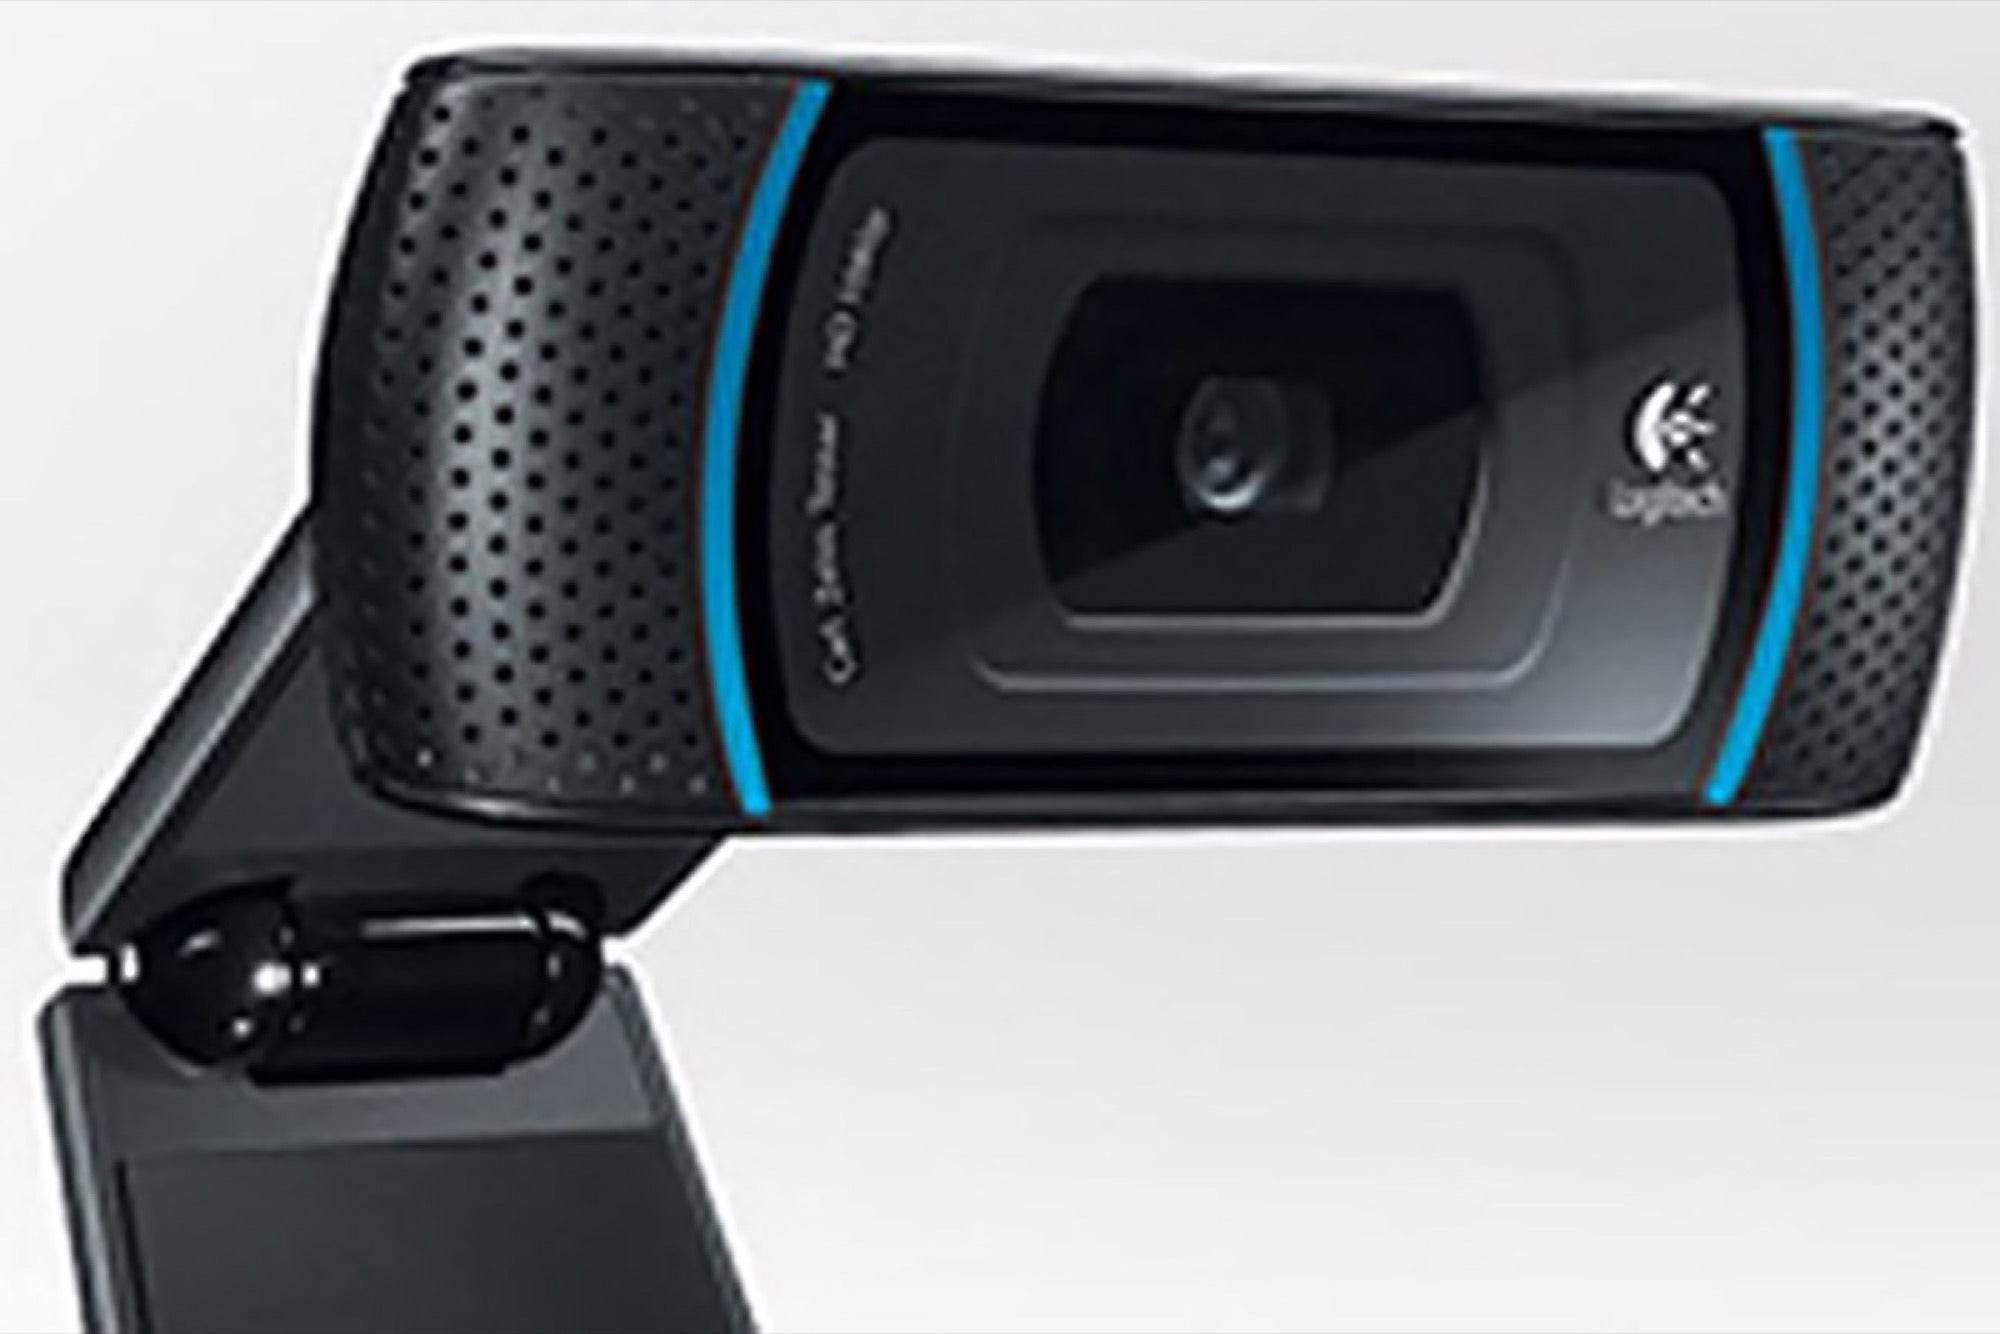 Review The Hd Pro Webcam C910